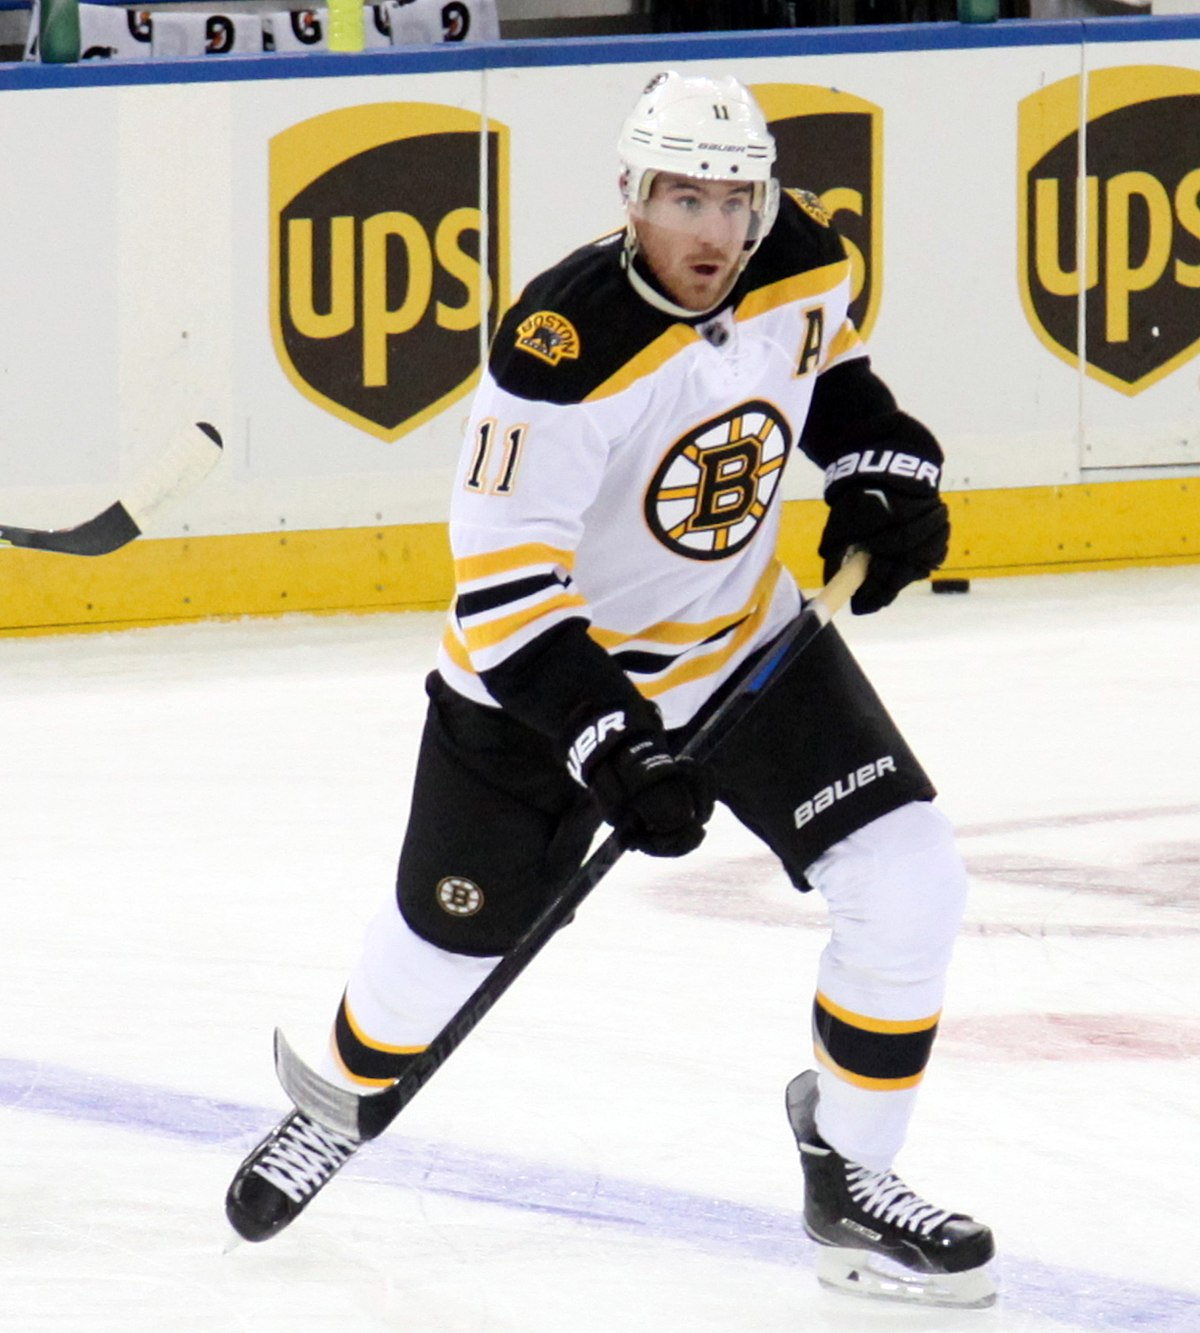 Jimmy Hayes (ice Hockey)